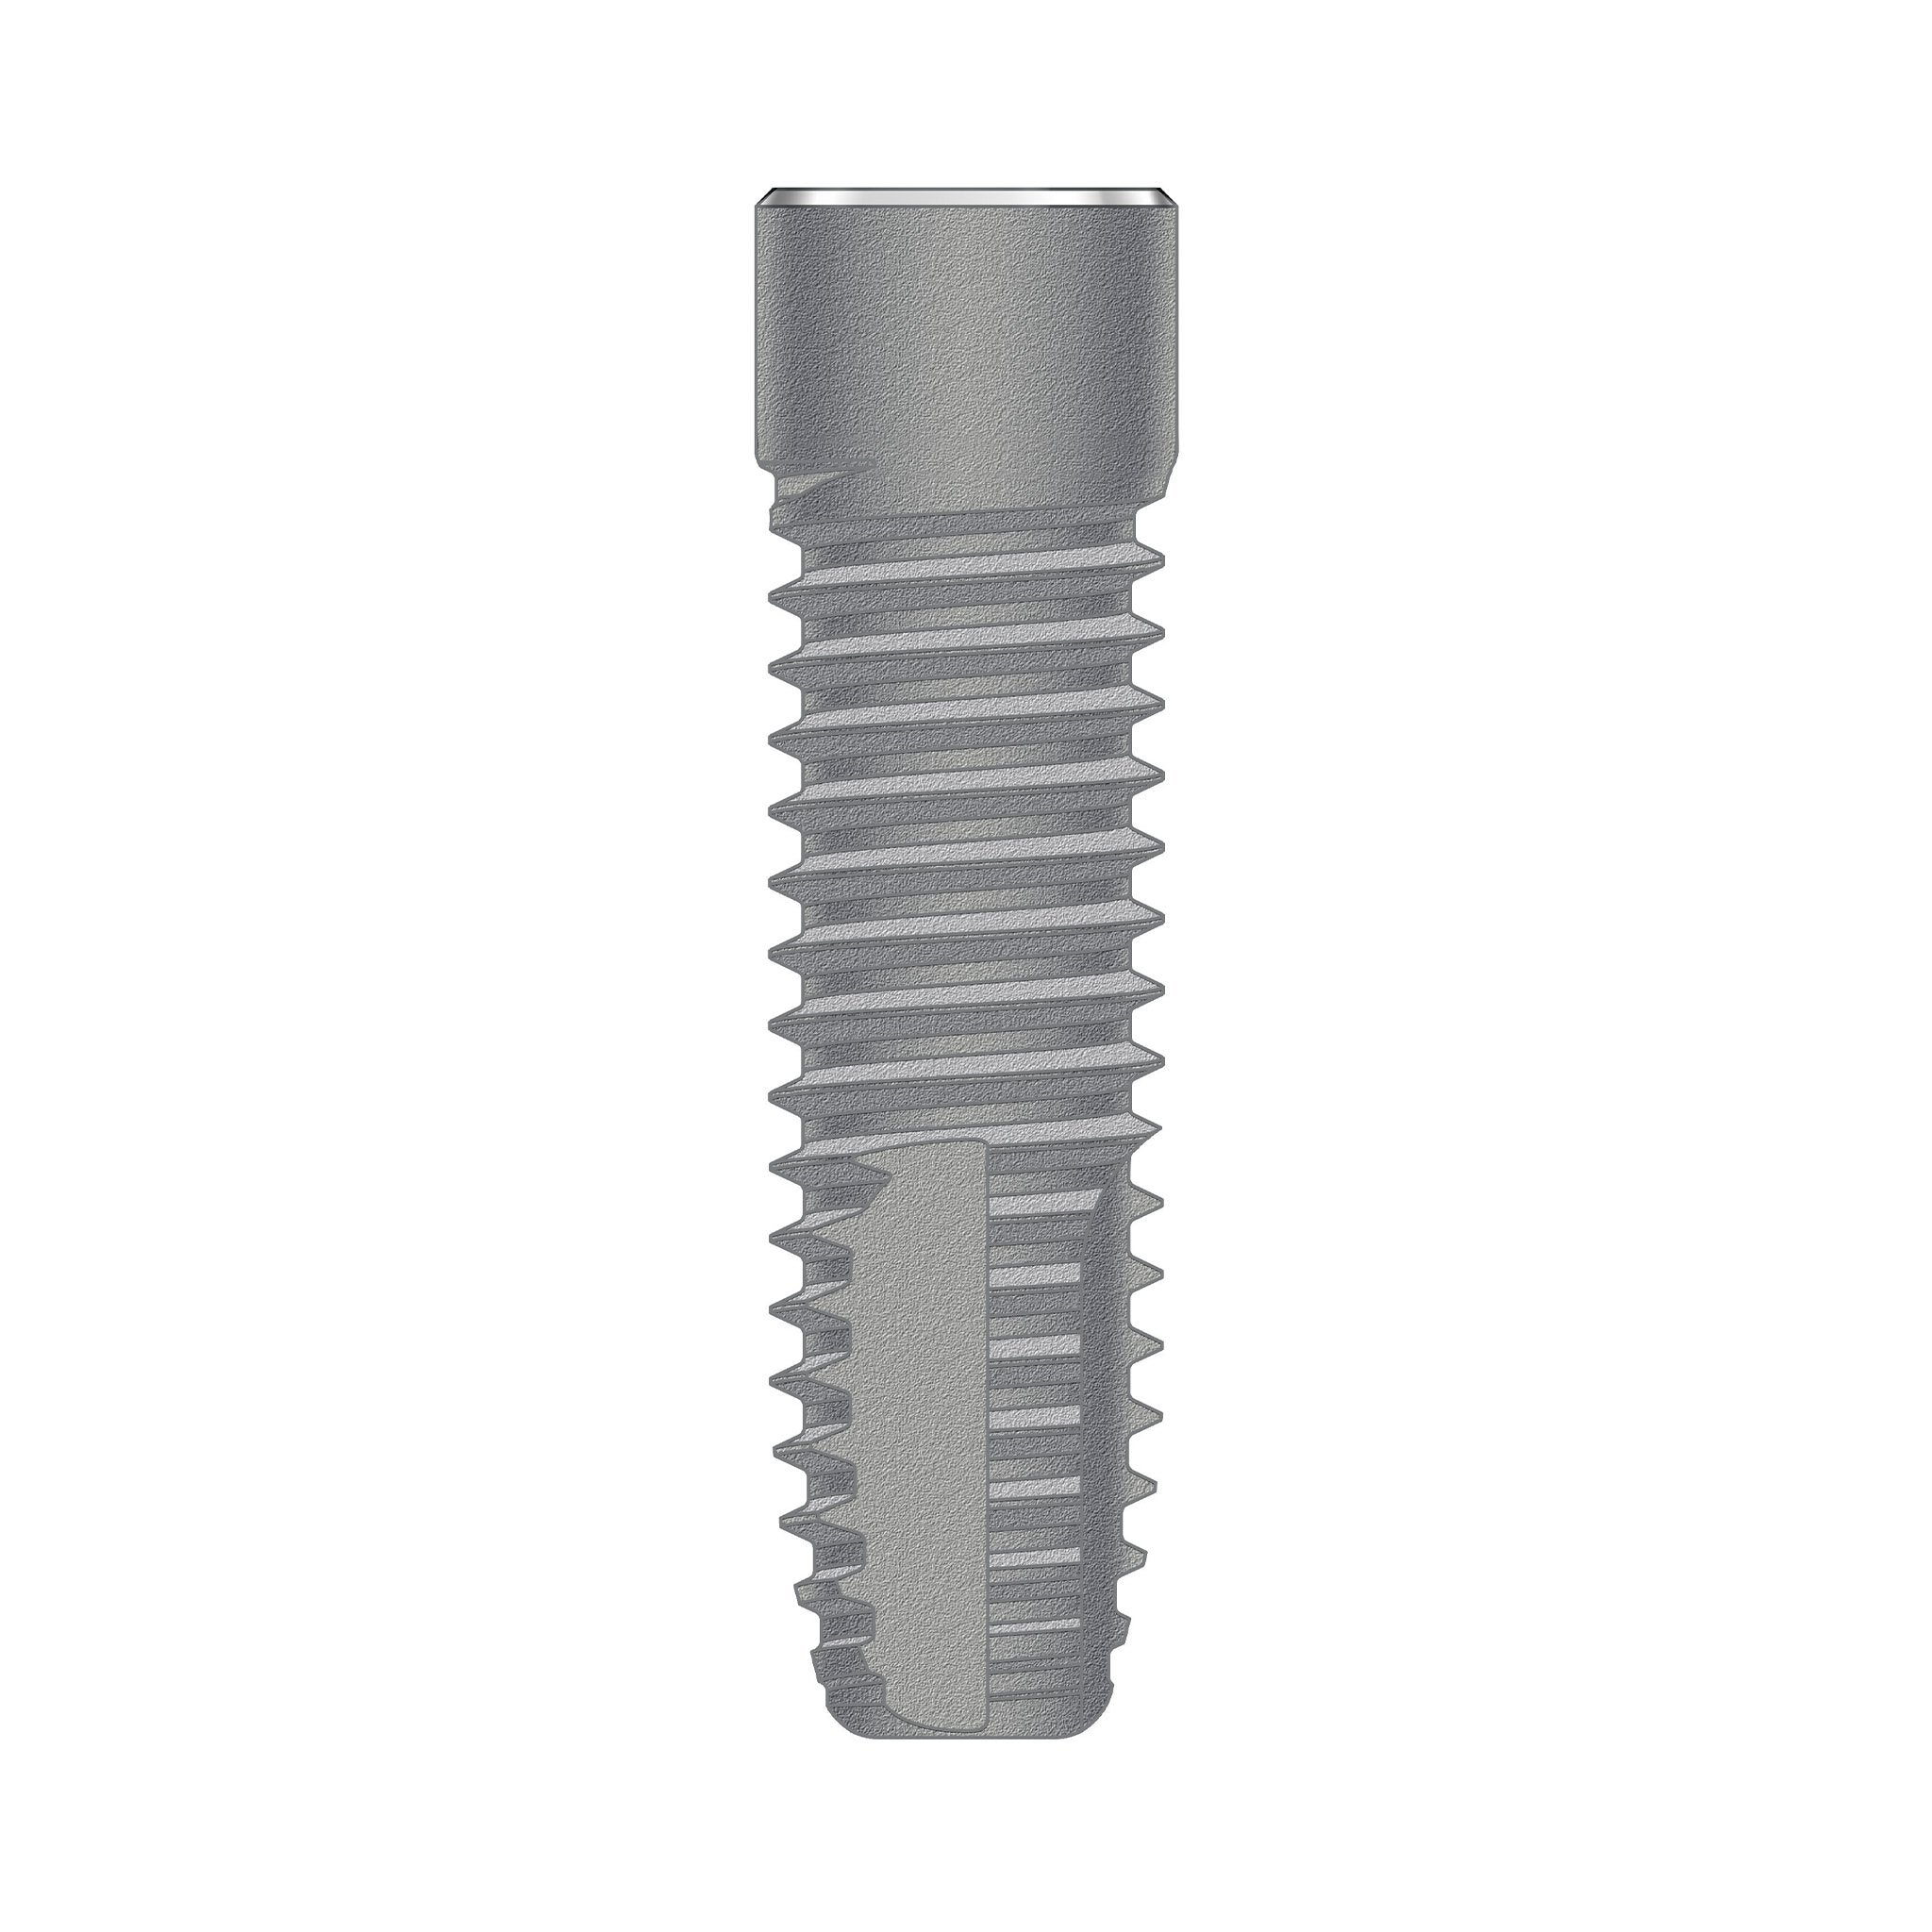 PrimaConnex® TC Straight Implant SD Ø 3.3 x 11.5mm | K3